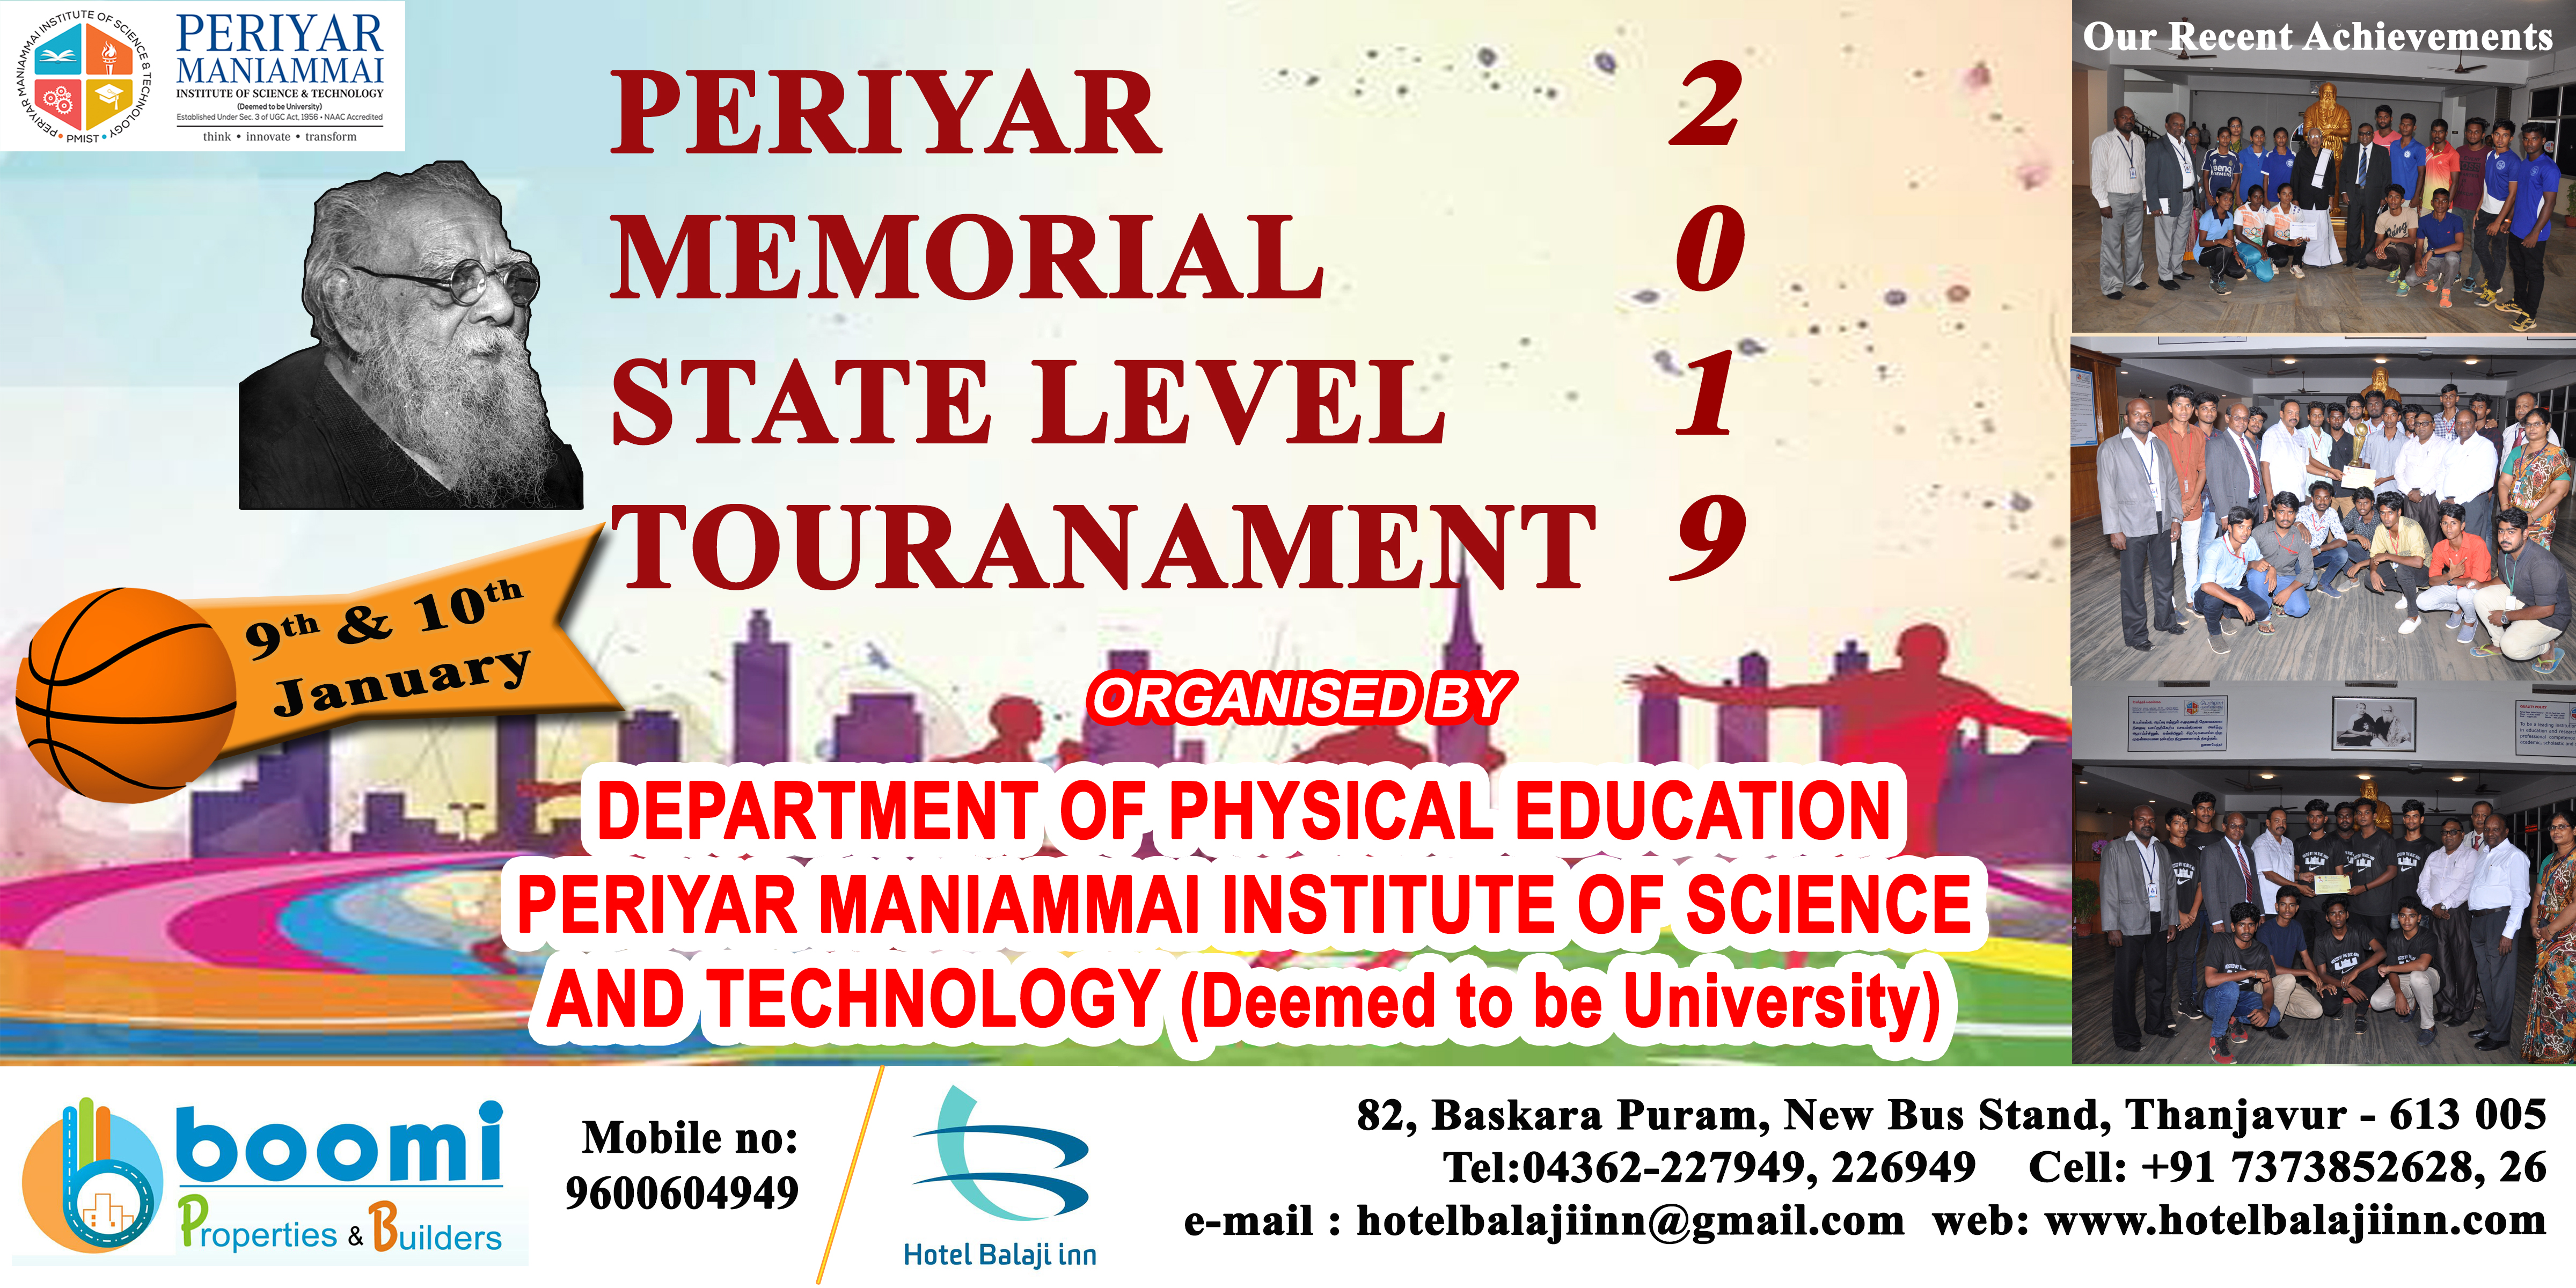 Periyar Maniammai Institute Of Science Technology Think